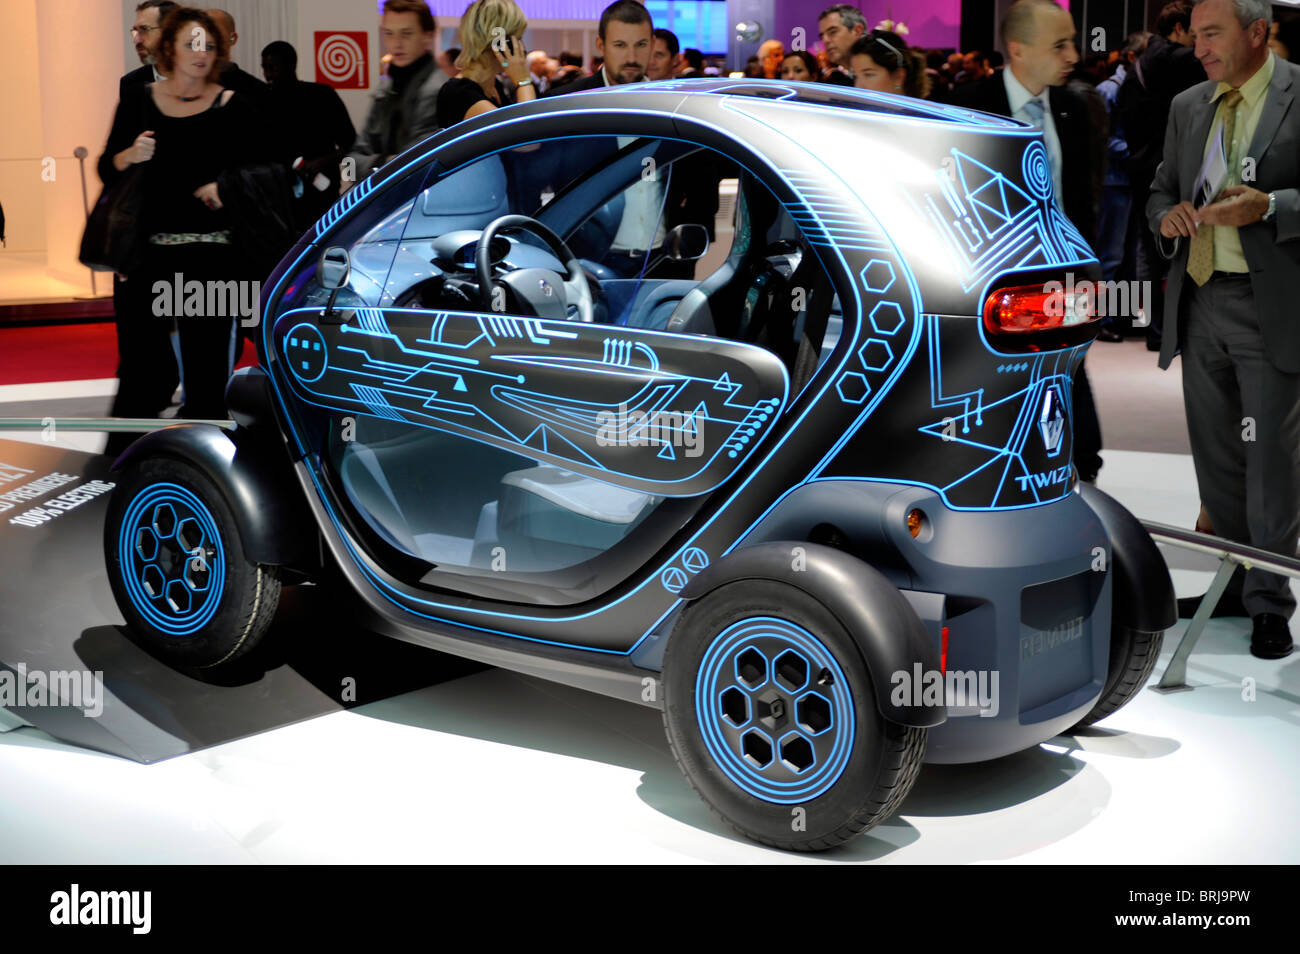 renault twizy electric car zero emission paris motor show france stock photo royalty free. Black Bedroom Furniture Sets. Home Design Ideas